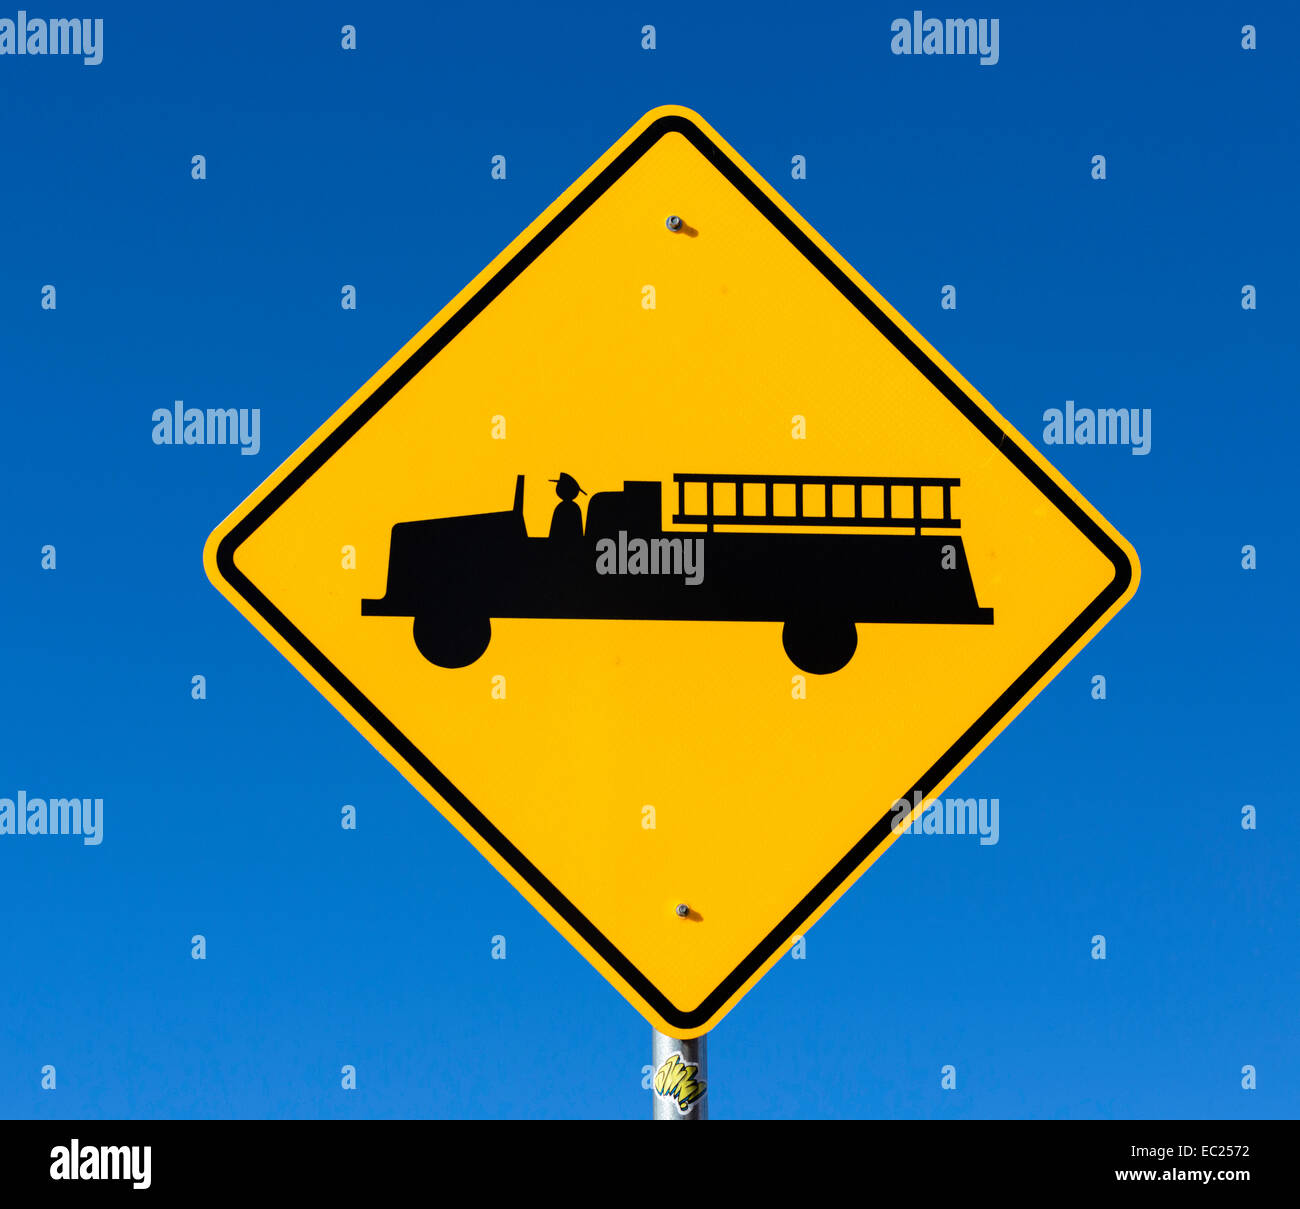 Fire Truck warning sign, USA - Stock Image